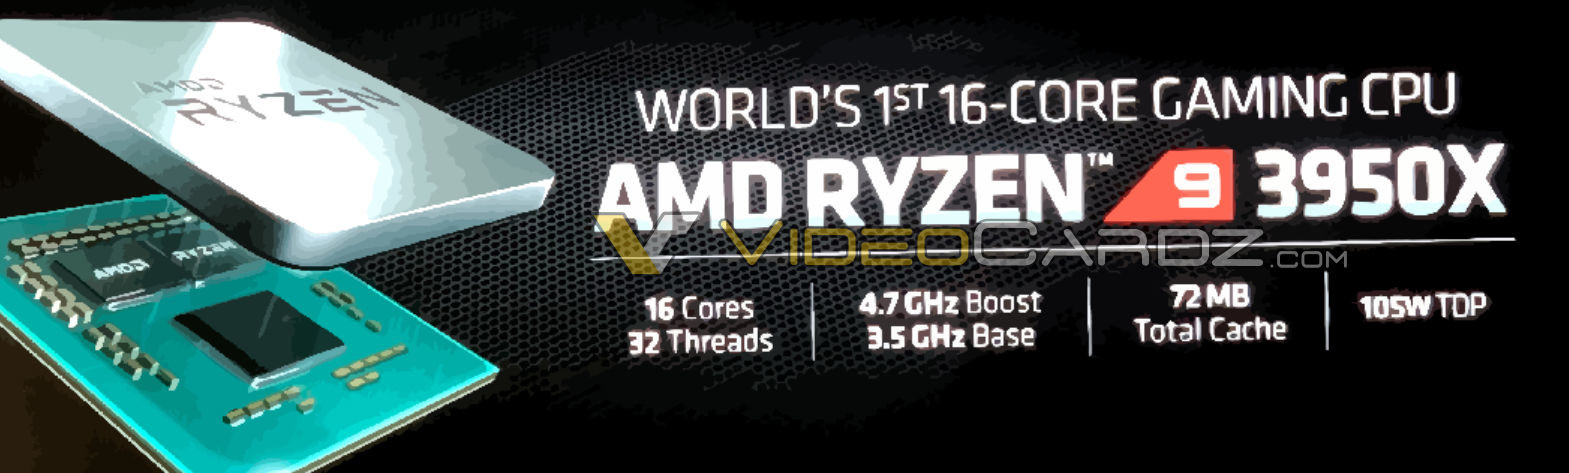 Amd Readies Ryzen 9 3950x 16 Core Processor To Awestrike Crowds At E3 Techpowerup